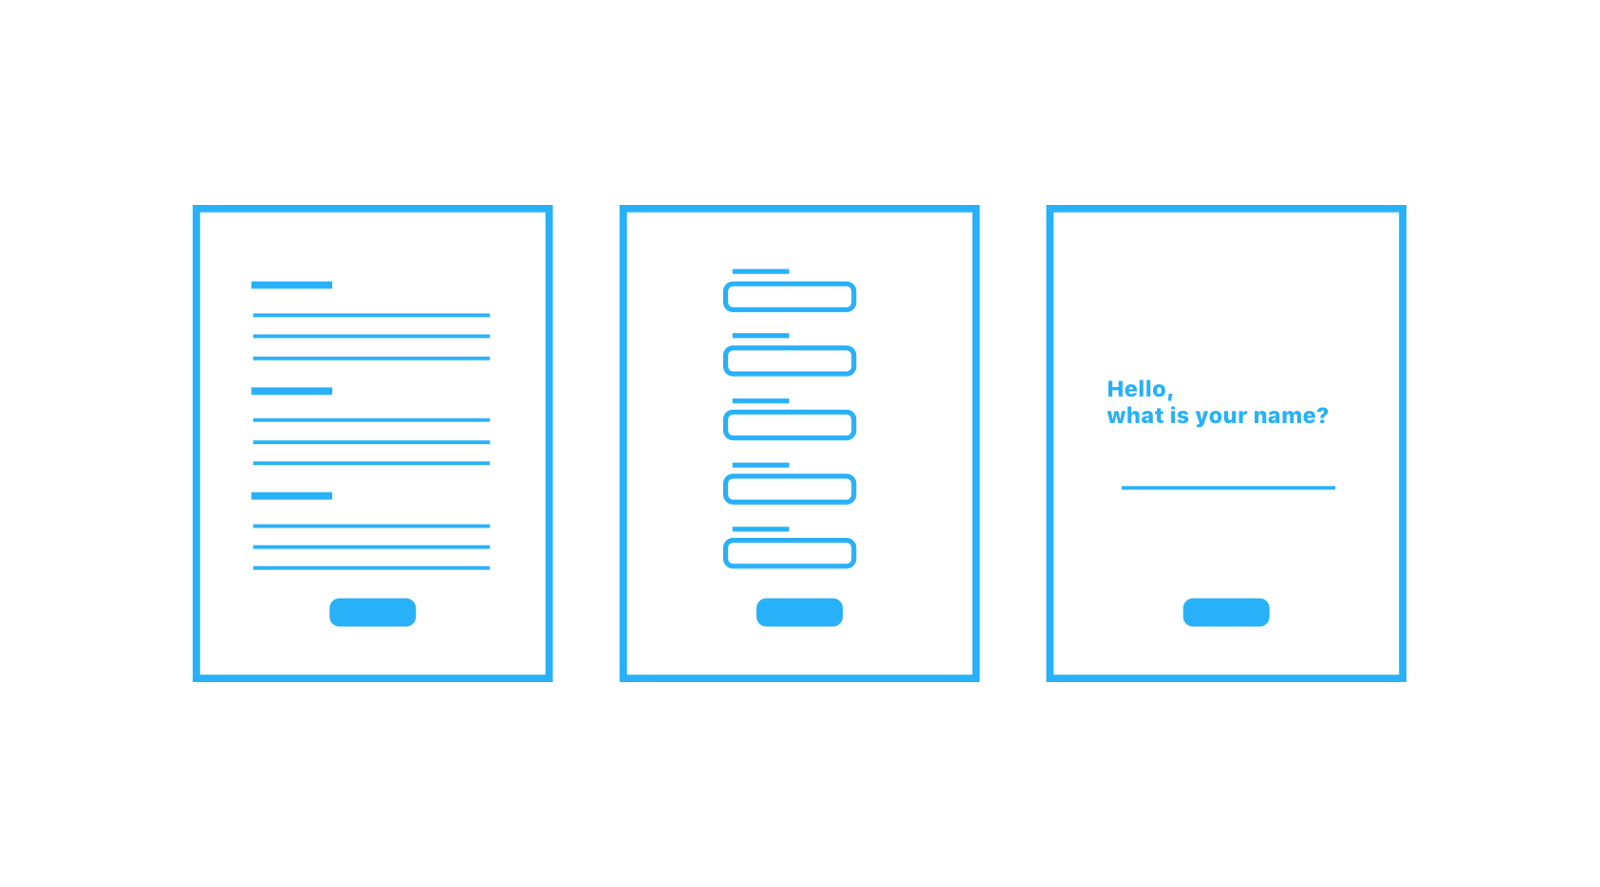 Html Form Design Best Practices